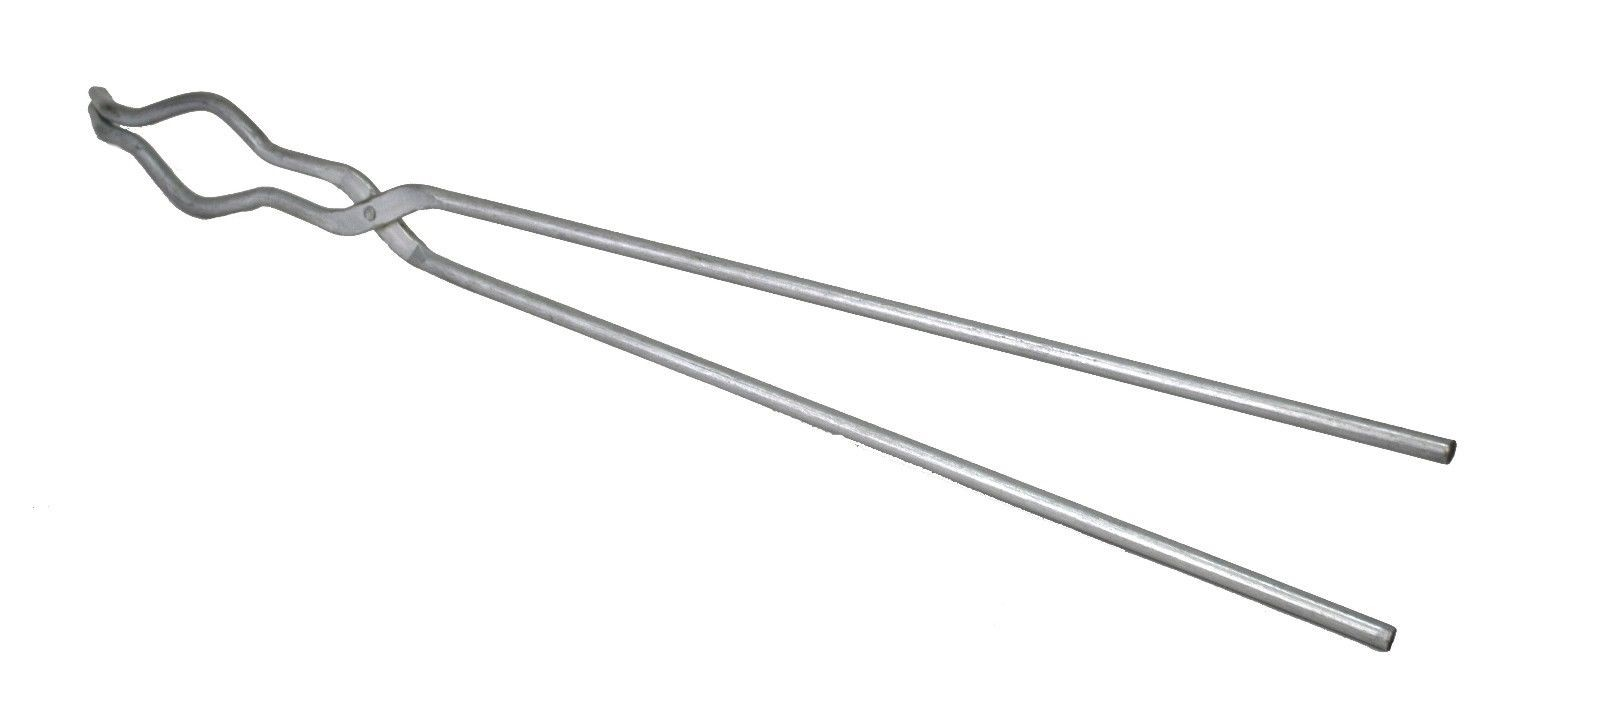 "18"" Bent Foundry Crucible Tongs, TONG-0014 